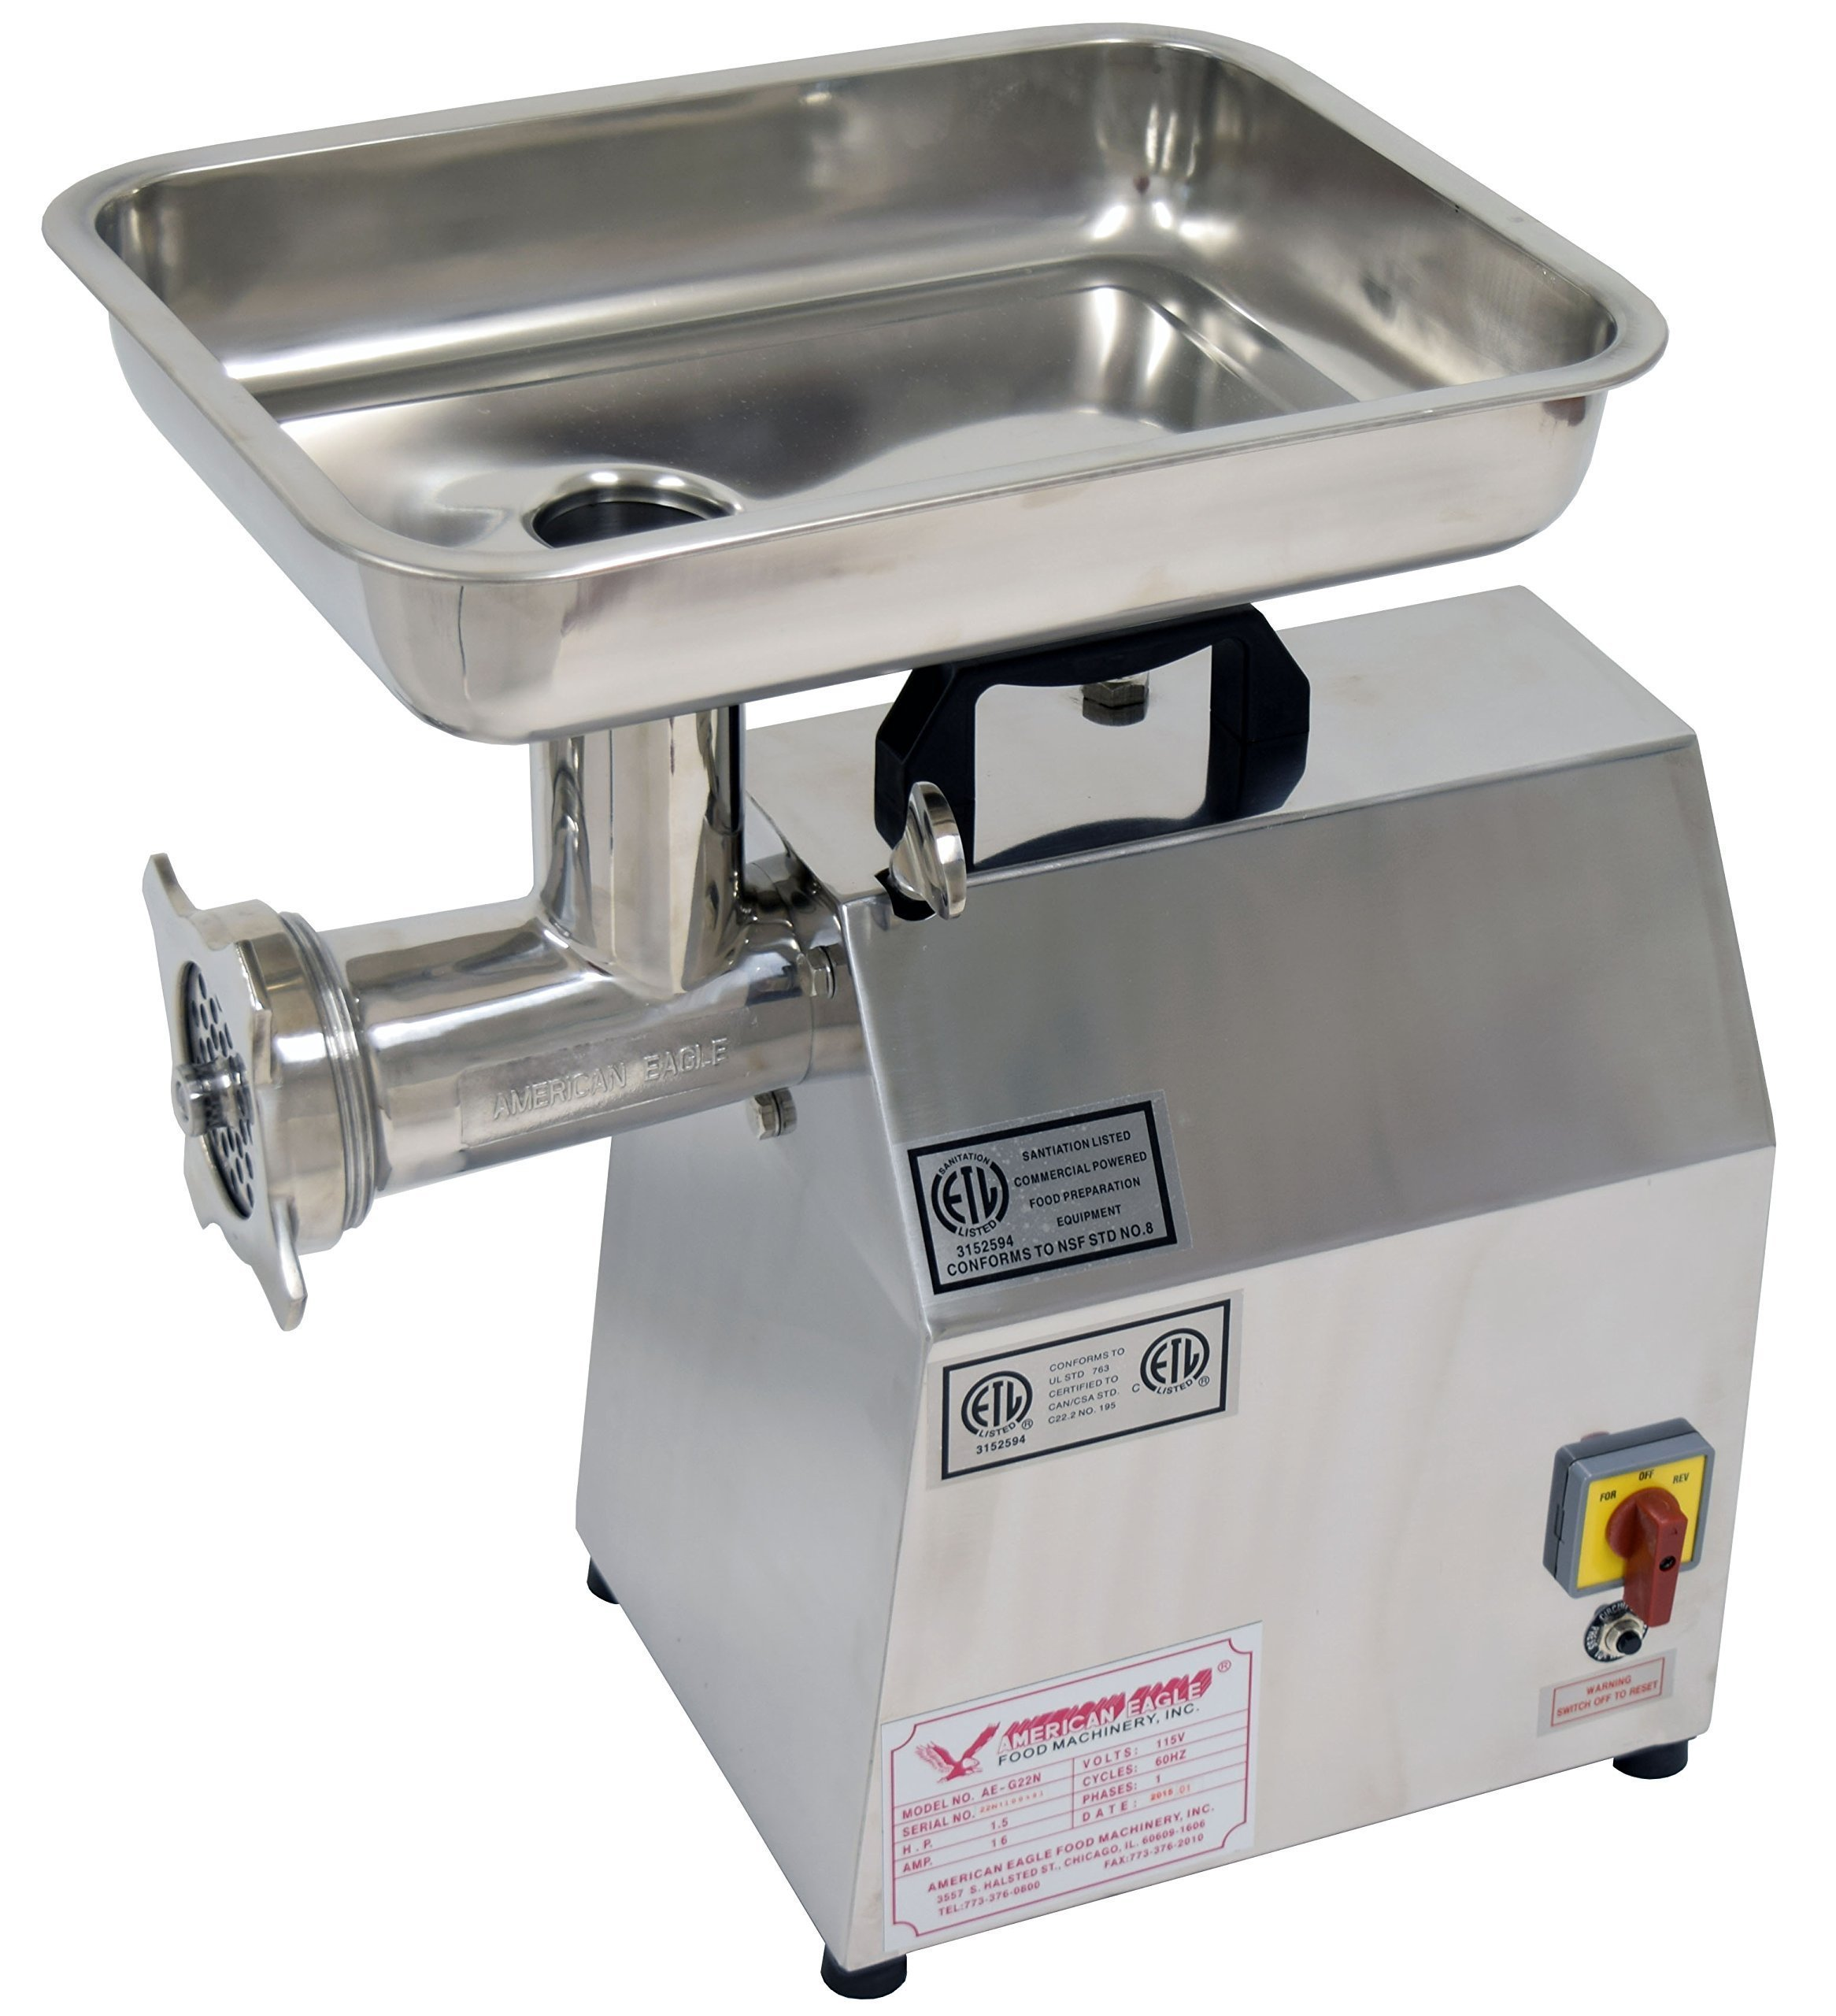 American Eagle AE-G22N Food Machinery 1.5HP #22 Commercial Stainless Steel Meat Grinder by American Eagle Food Machinery